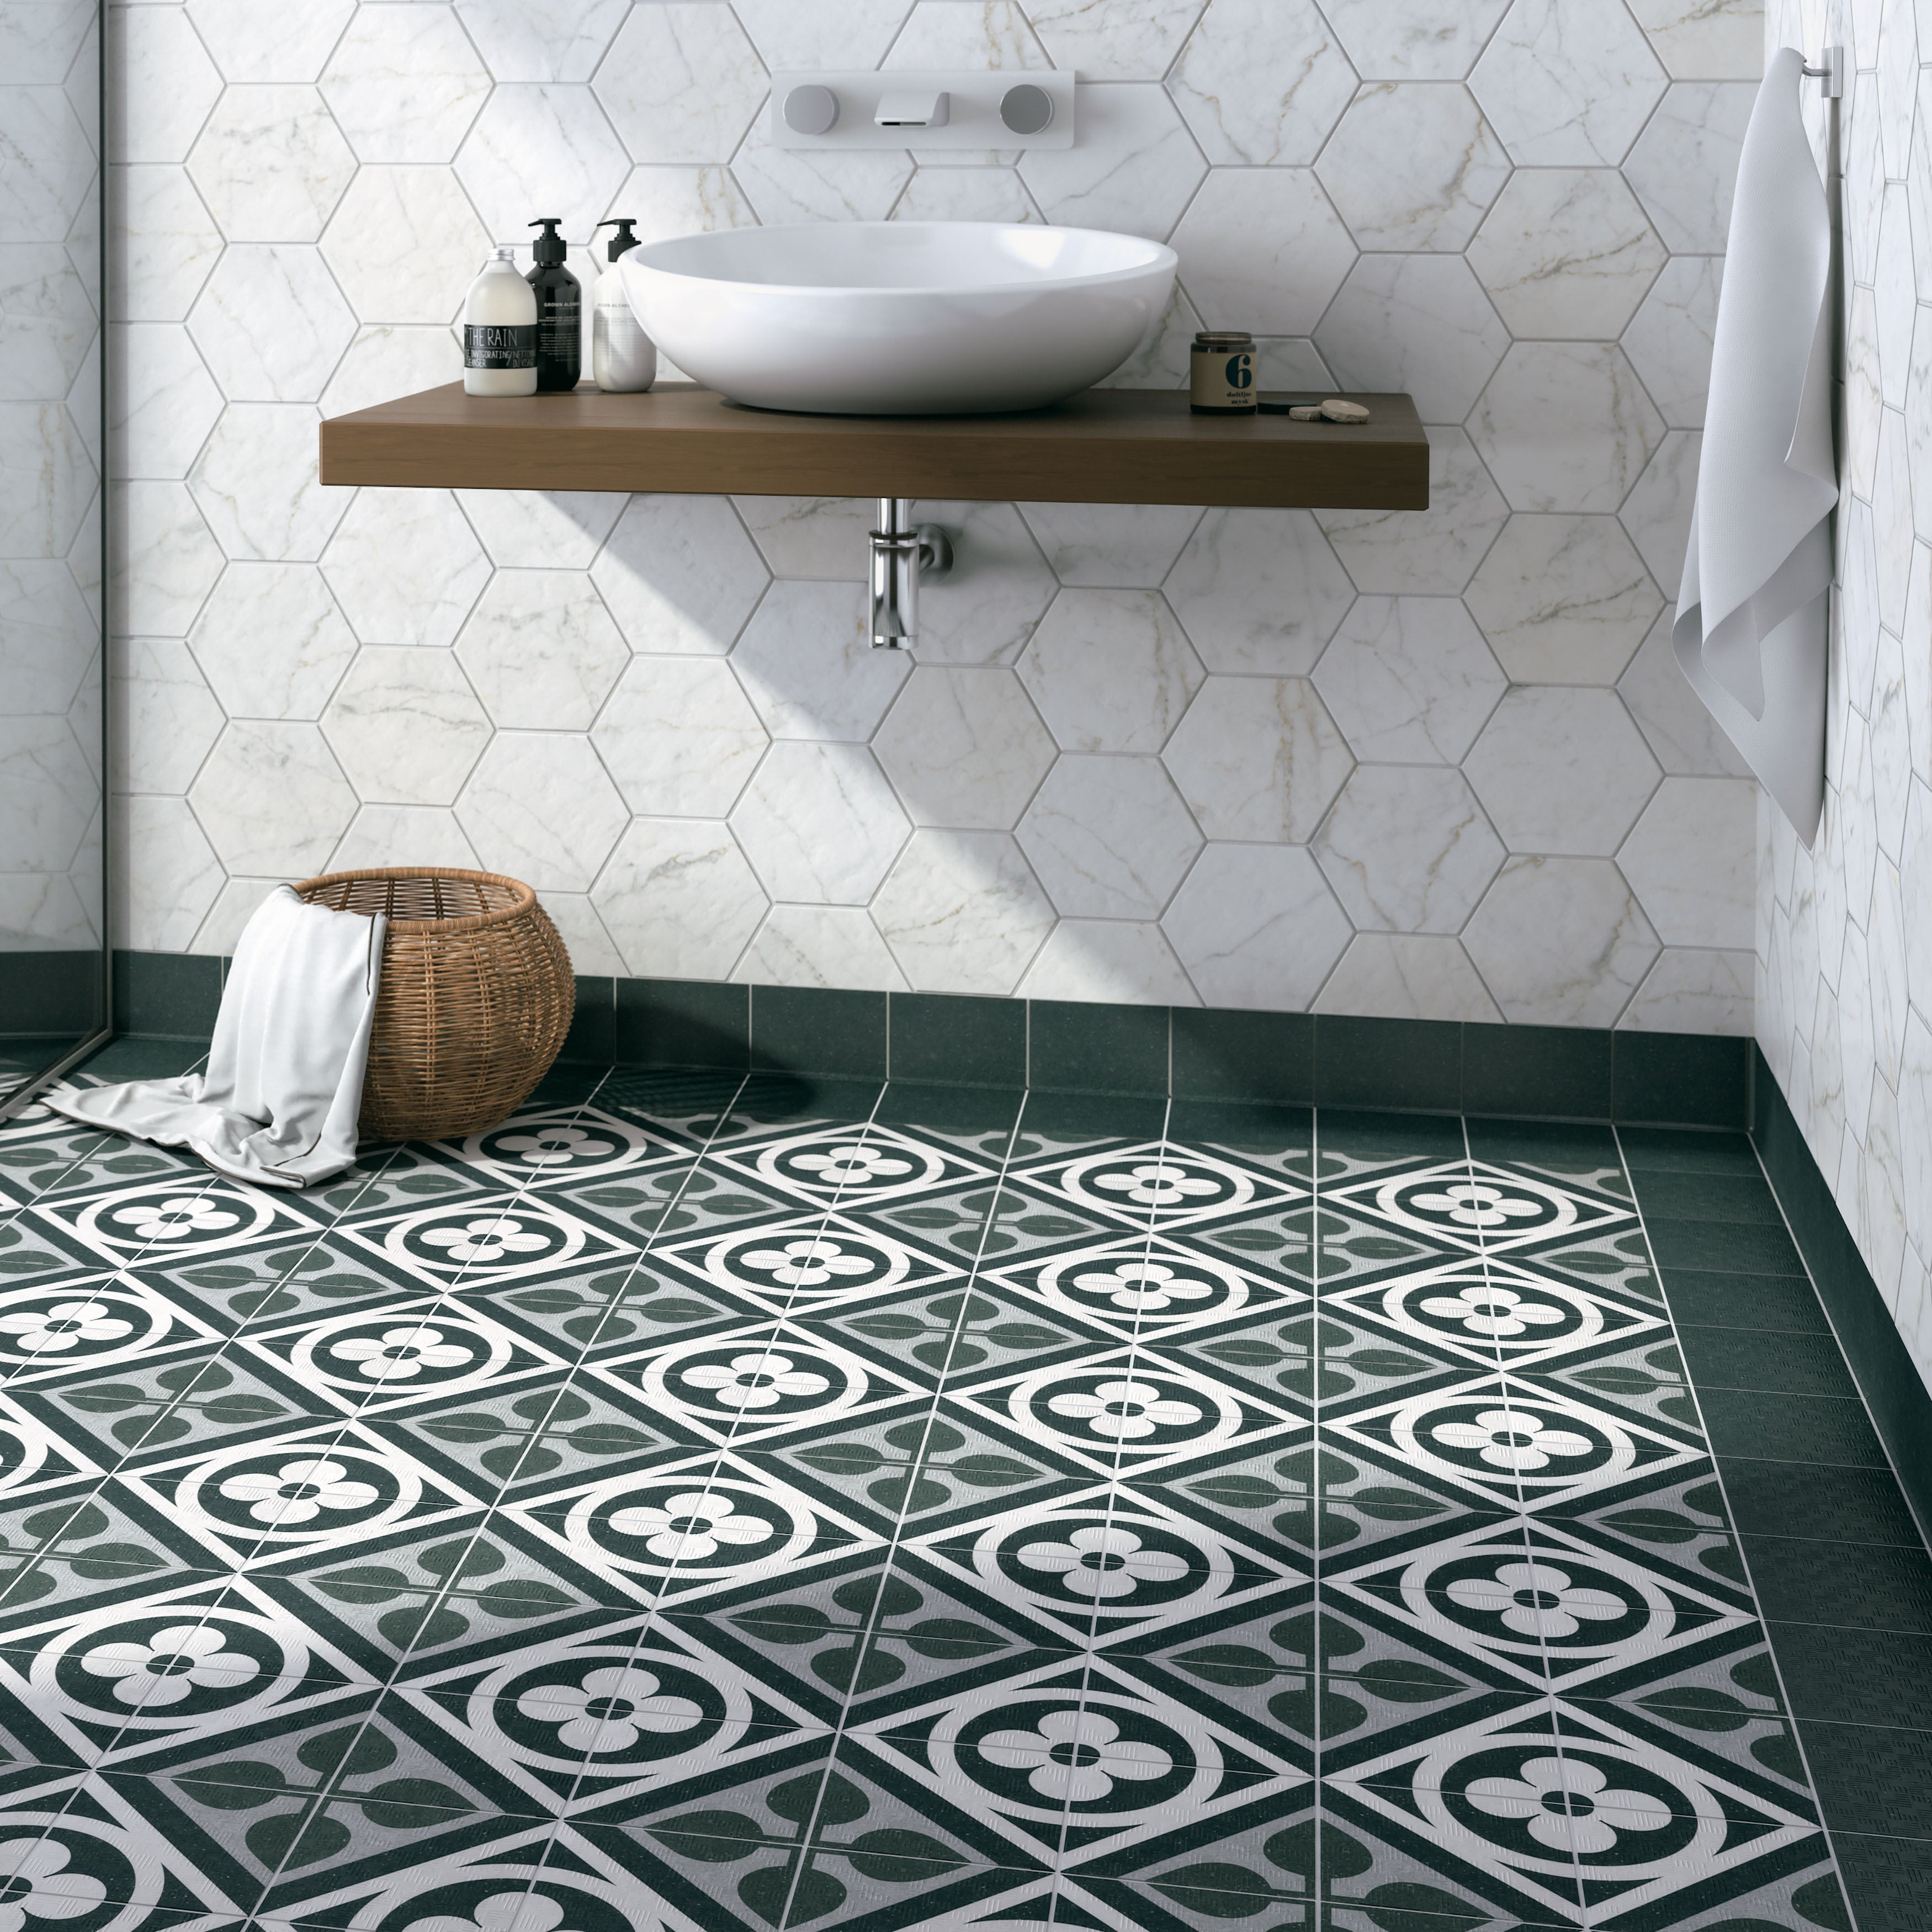 Somertile 6x6 inch zona flower black porcelain floor and wall tile somertile 6x6 inch zona flower black porcelain floor and wall tile 44case 1194 sqft free shipping today overstock 19912382 dailygadgetfo Image collections